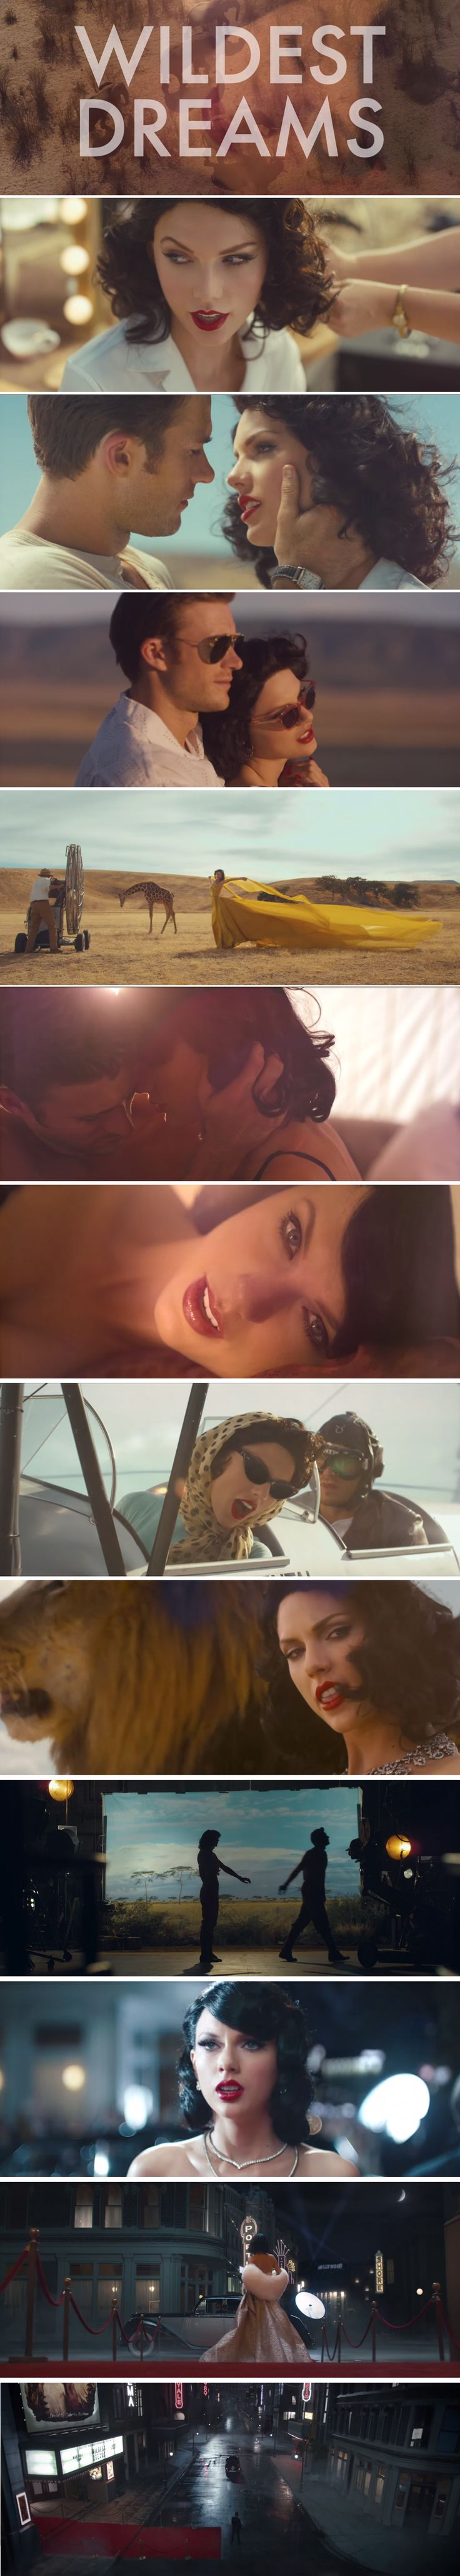 "Taylor Swift dropped her new music video for ""Wildest Dreams"" at the MTV VMAs!"